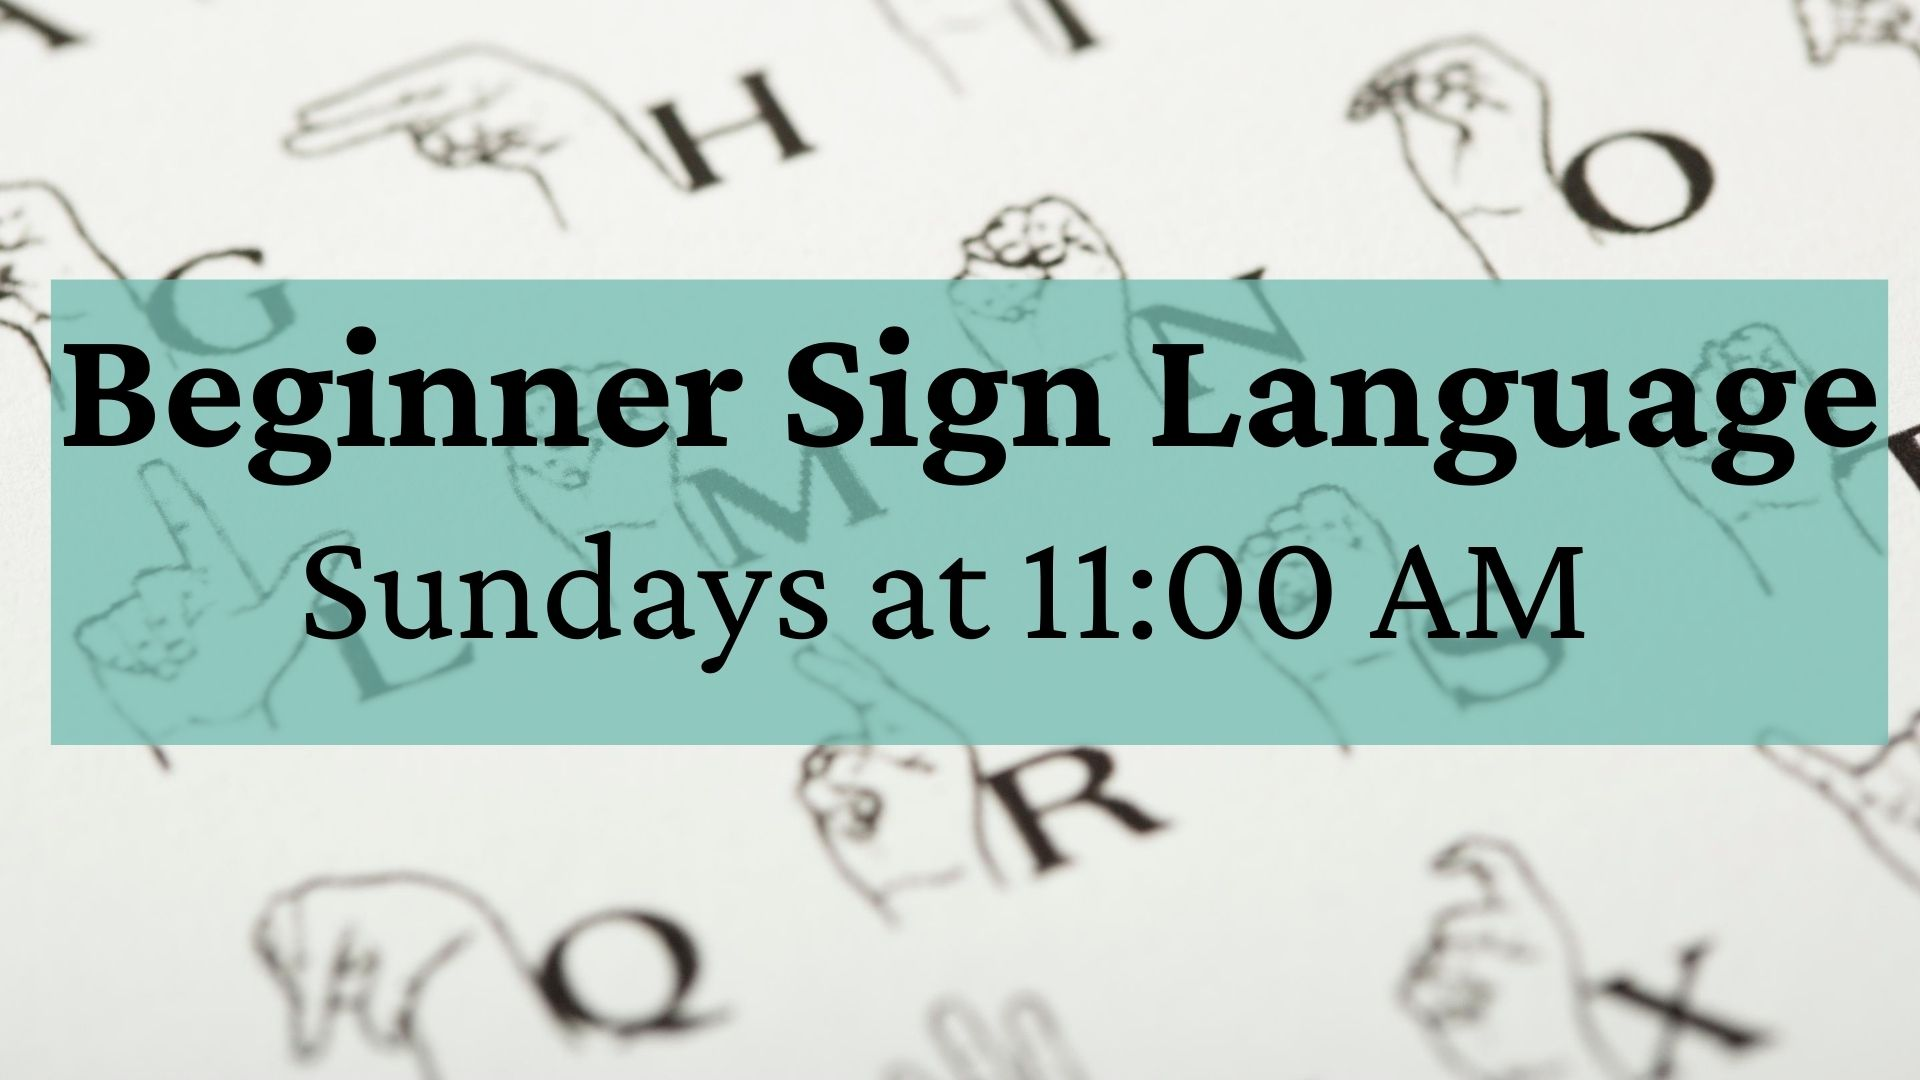 Beginner Sign Language